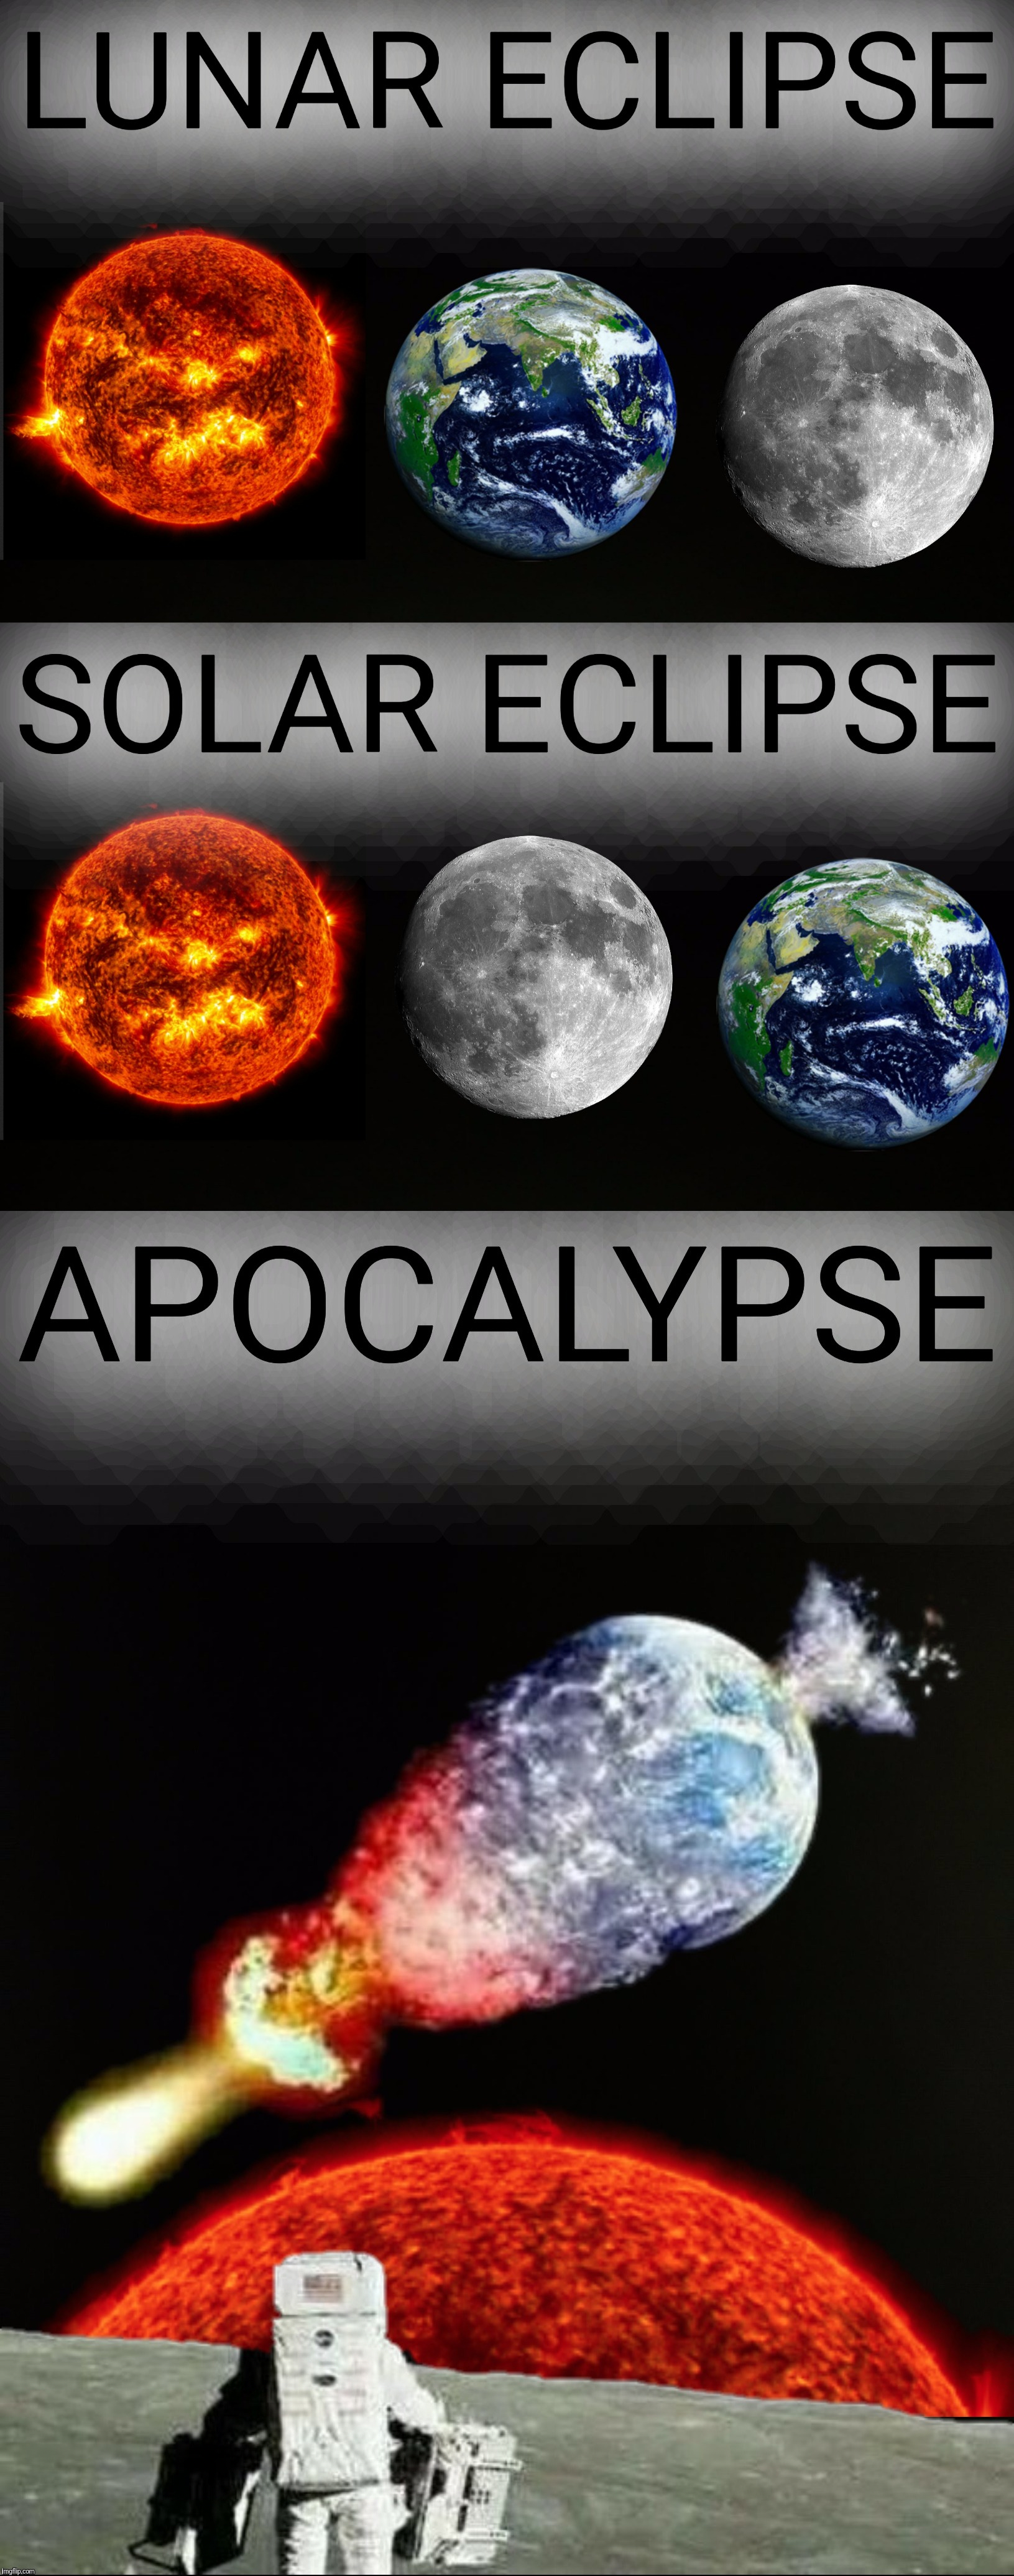 Objects in mirror may be closer than they appear. | LUNAR ECLIPSE SOLAR ECLIPSE APOCALYPSE | image tagged in sun,moon,earth,lunar eclipse,solar eclipse,apocalypse | made w/ Imgflip meme maker